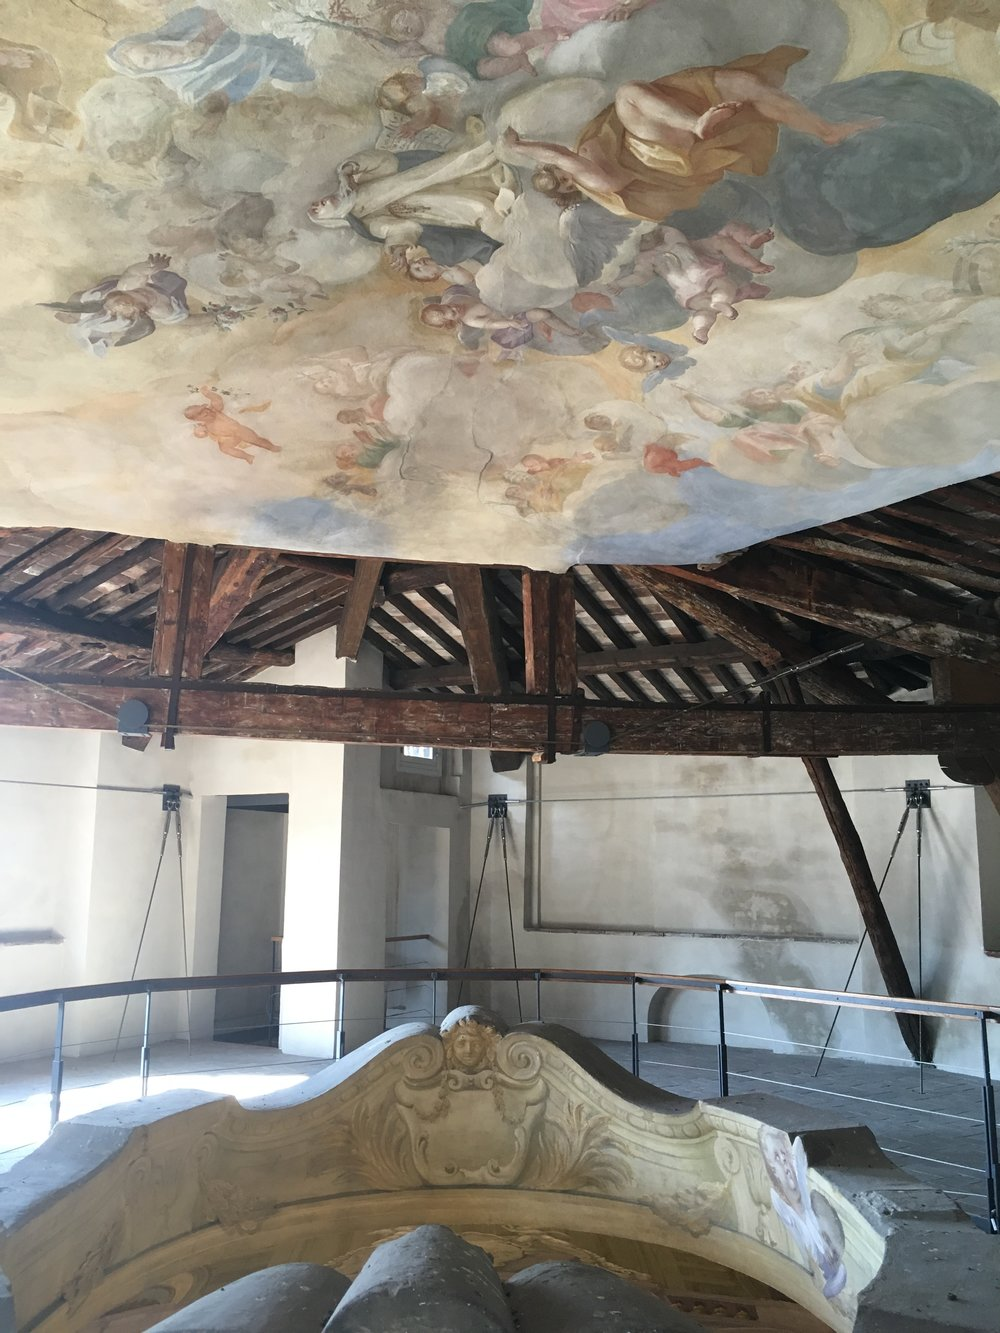 The frescoed ceiling seen above the edge of the oculus